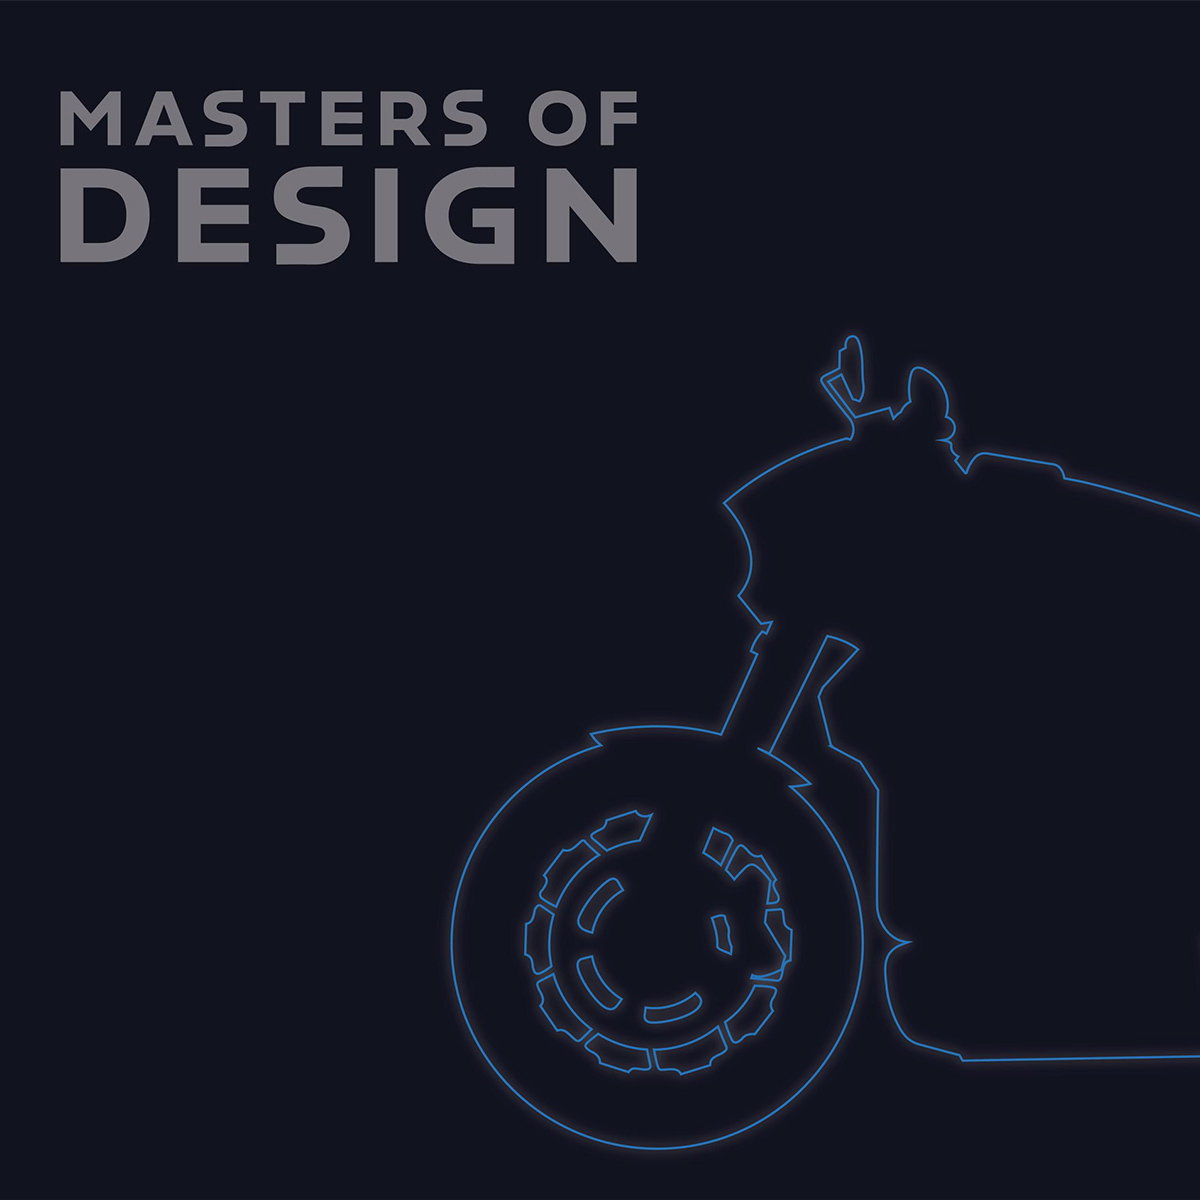 Masters of Design by Outpost and Harley Davidson